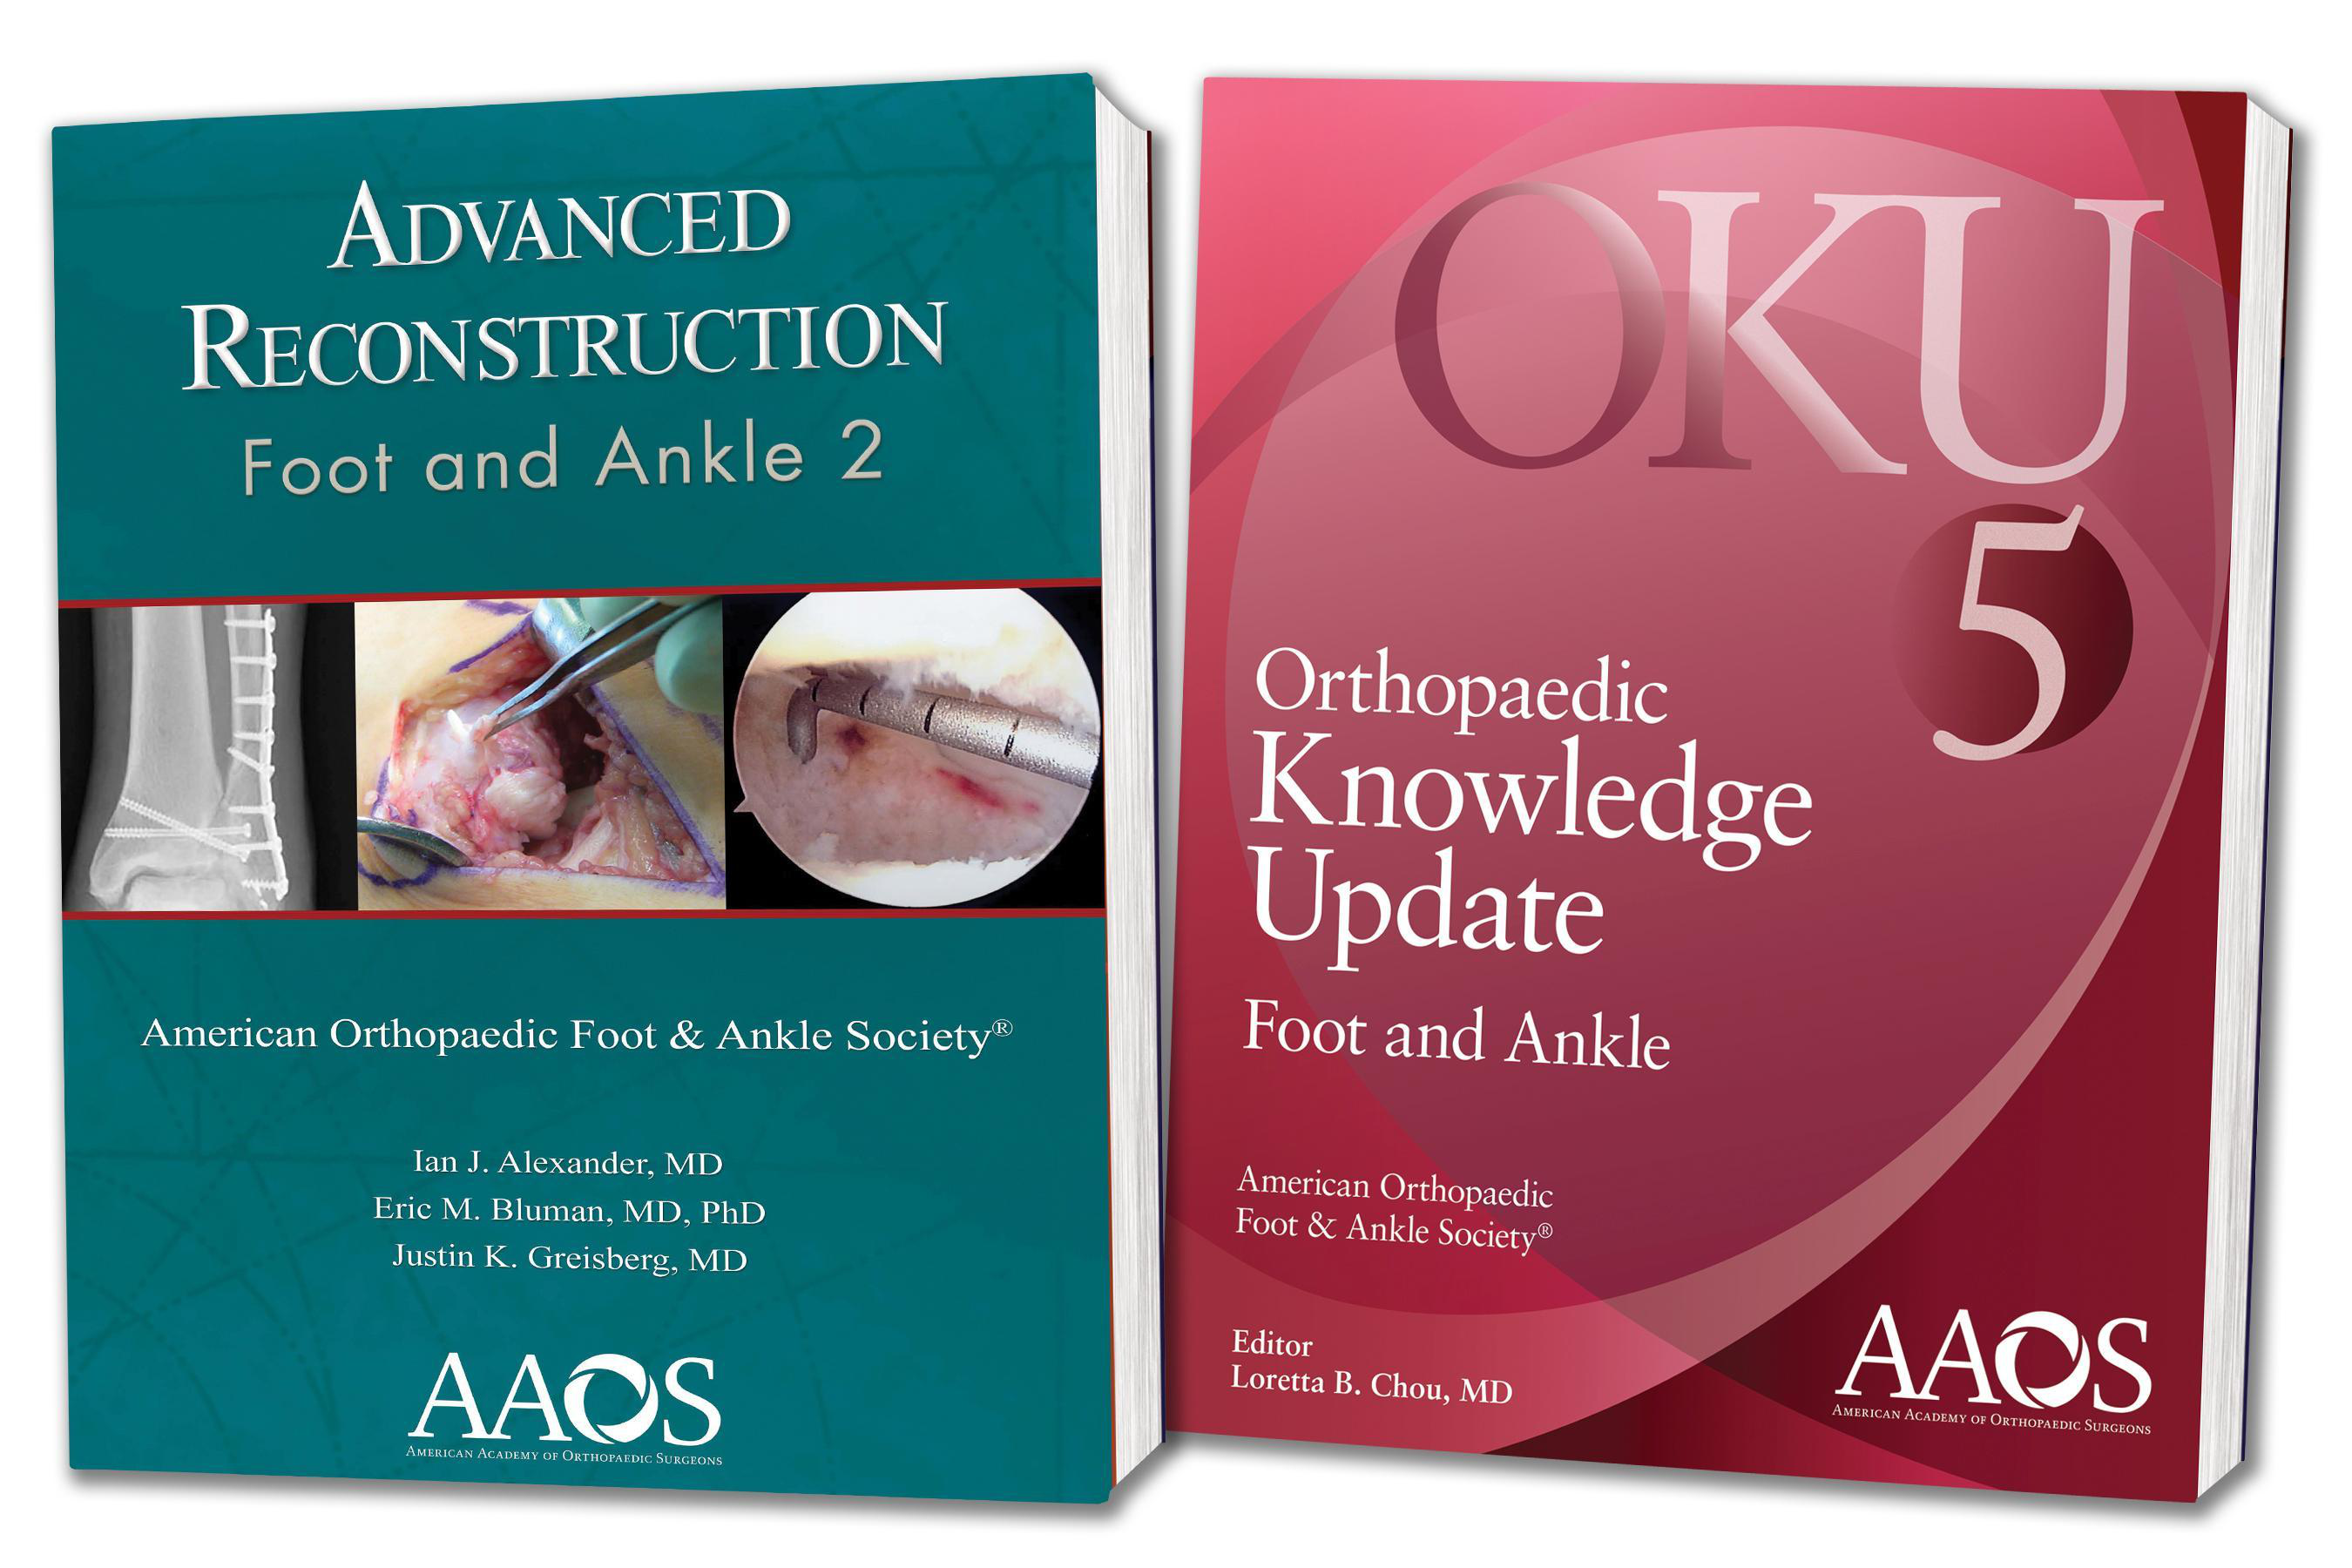 Foot and ankle surgery ebook array oku foot u0026 ankle 5 ebook advanced reconstruction foot u0026 ankle 2 rh aaos fandeluxe Choice Image